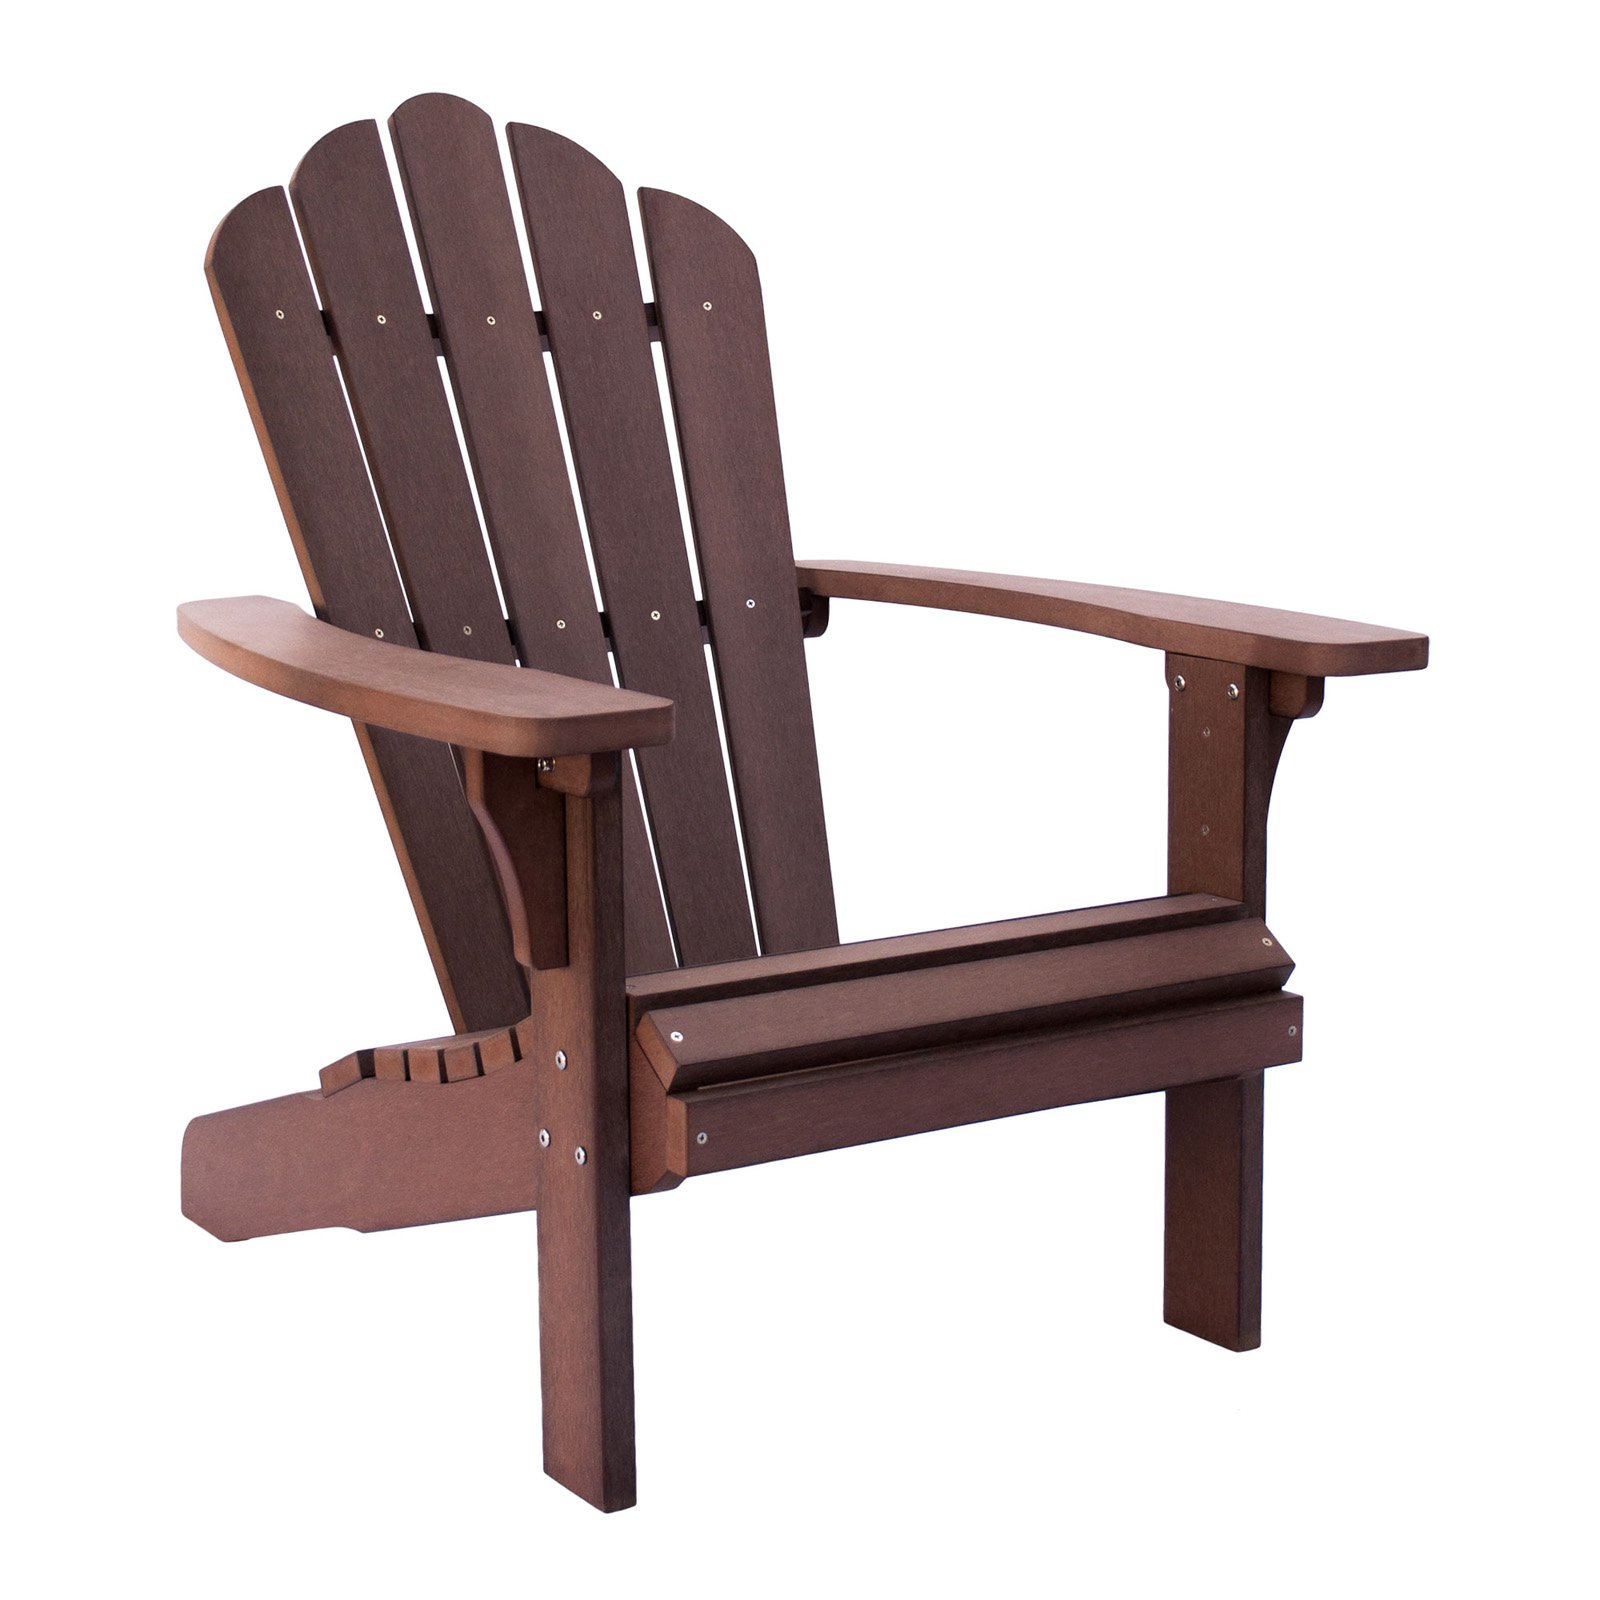 Shine Company West Palm Plastic Adirondack Chair - Chateau Brown